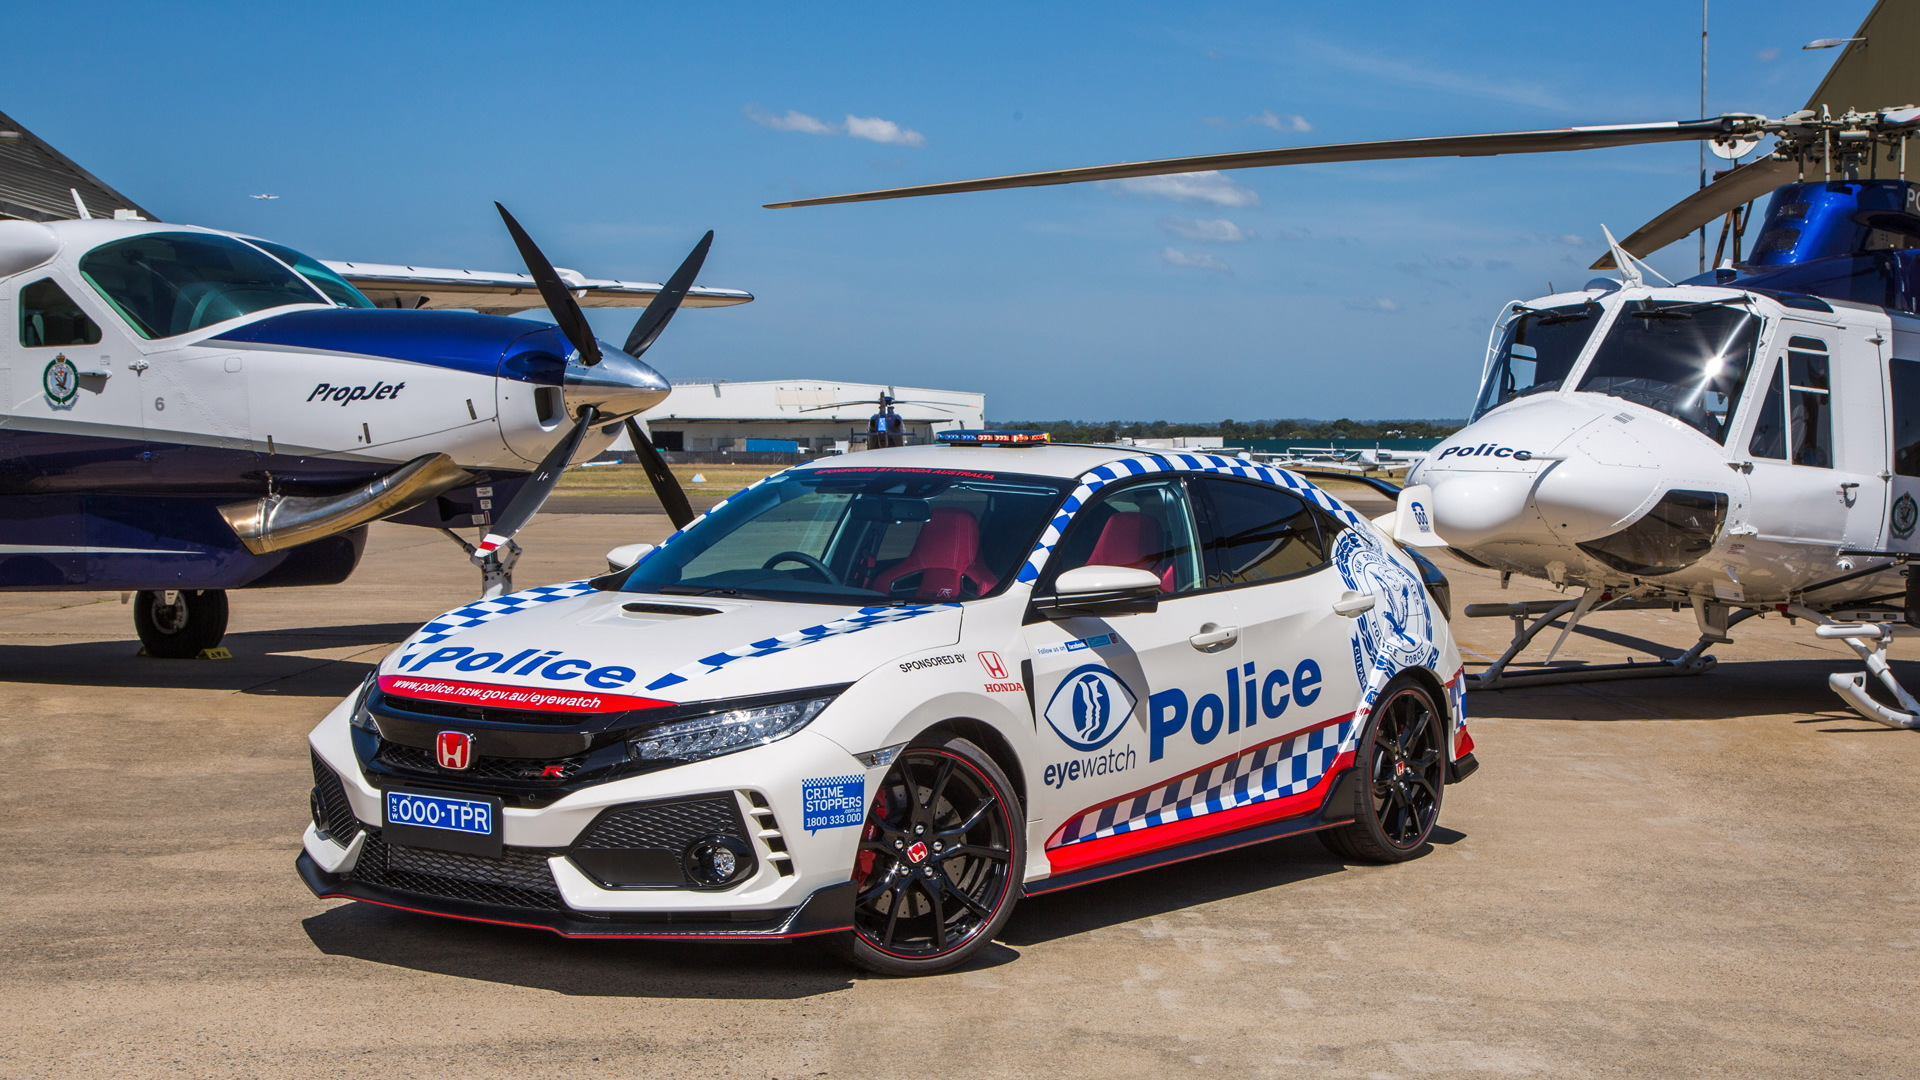 Honda Civic Type R police car for New South Wales, Australia